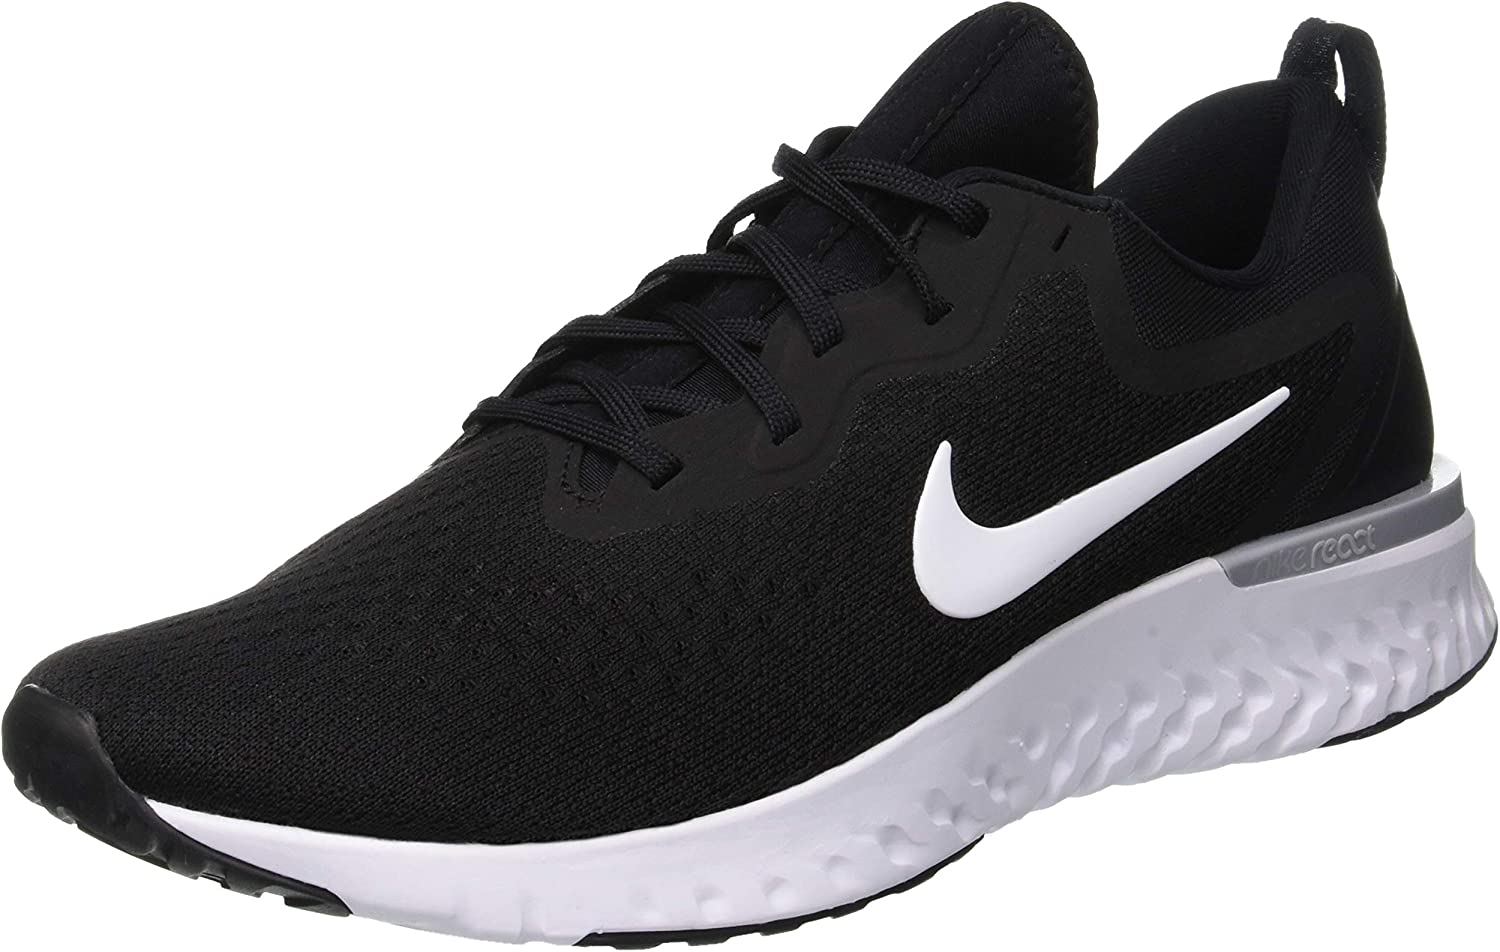 Nike Men's Herren Laufschuh Odyssey React Competition Running shoes